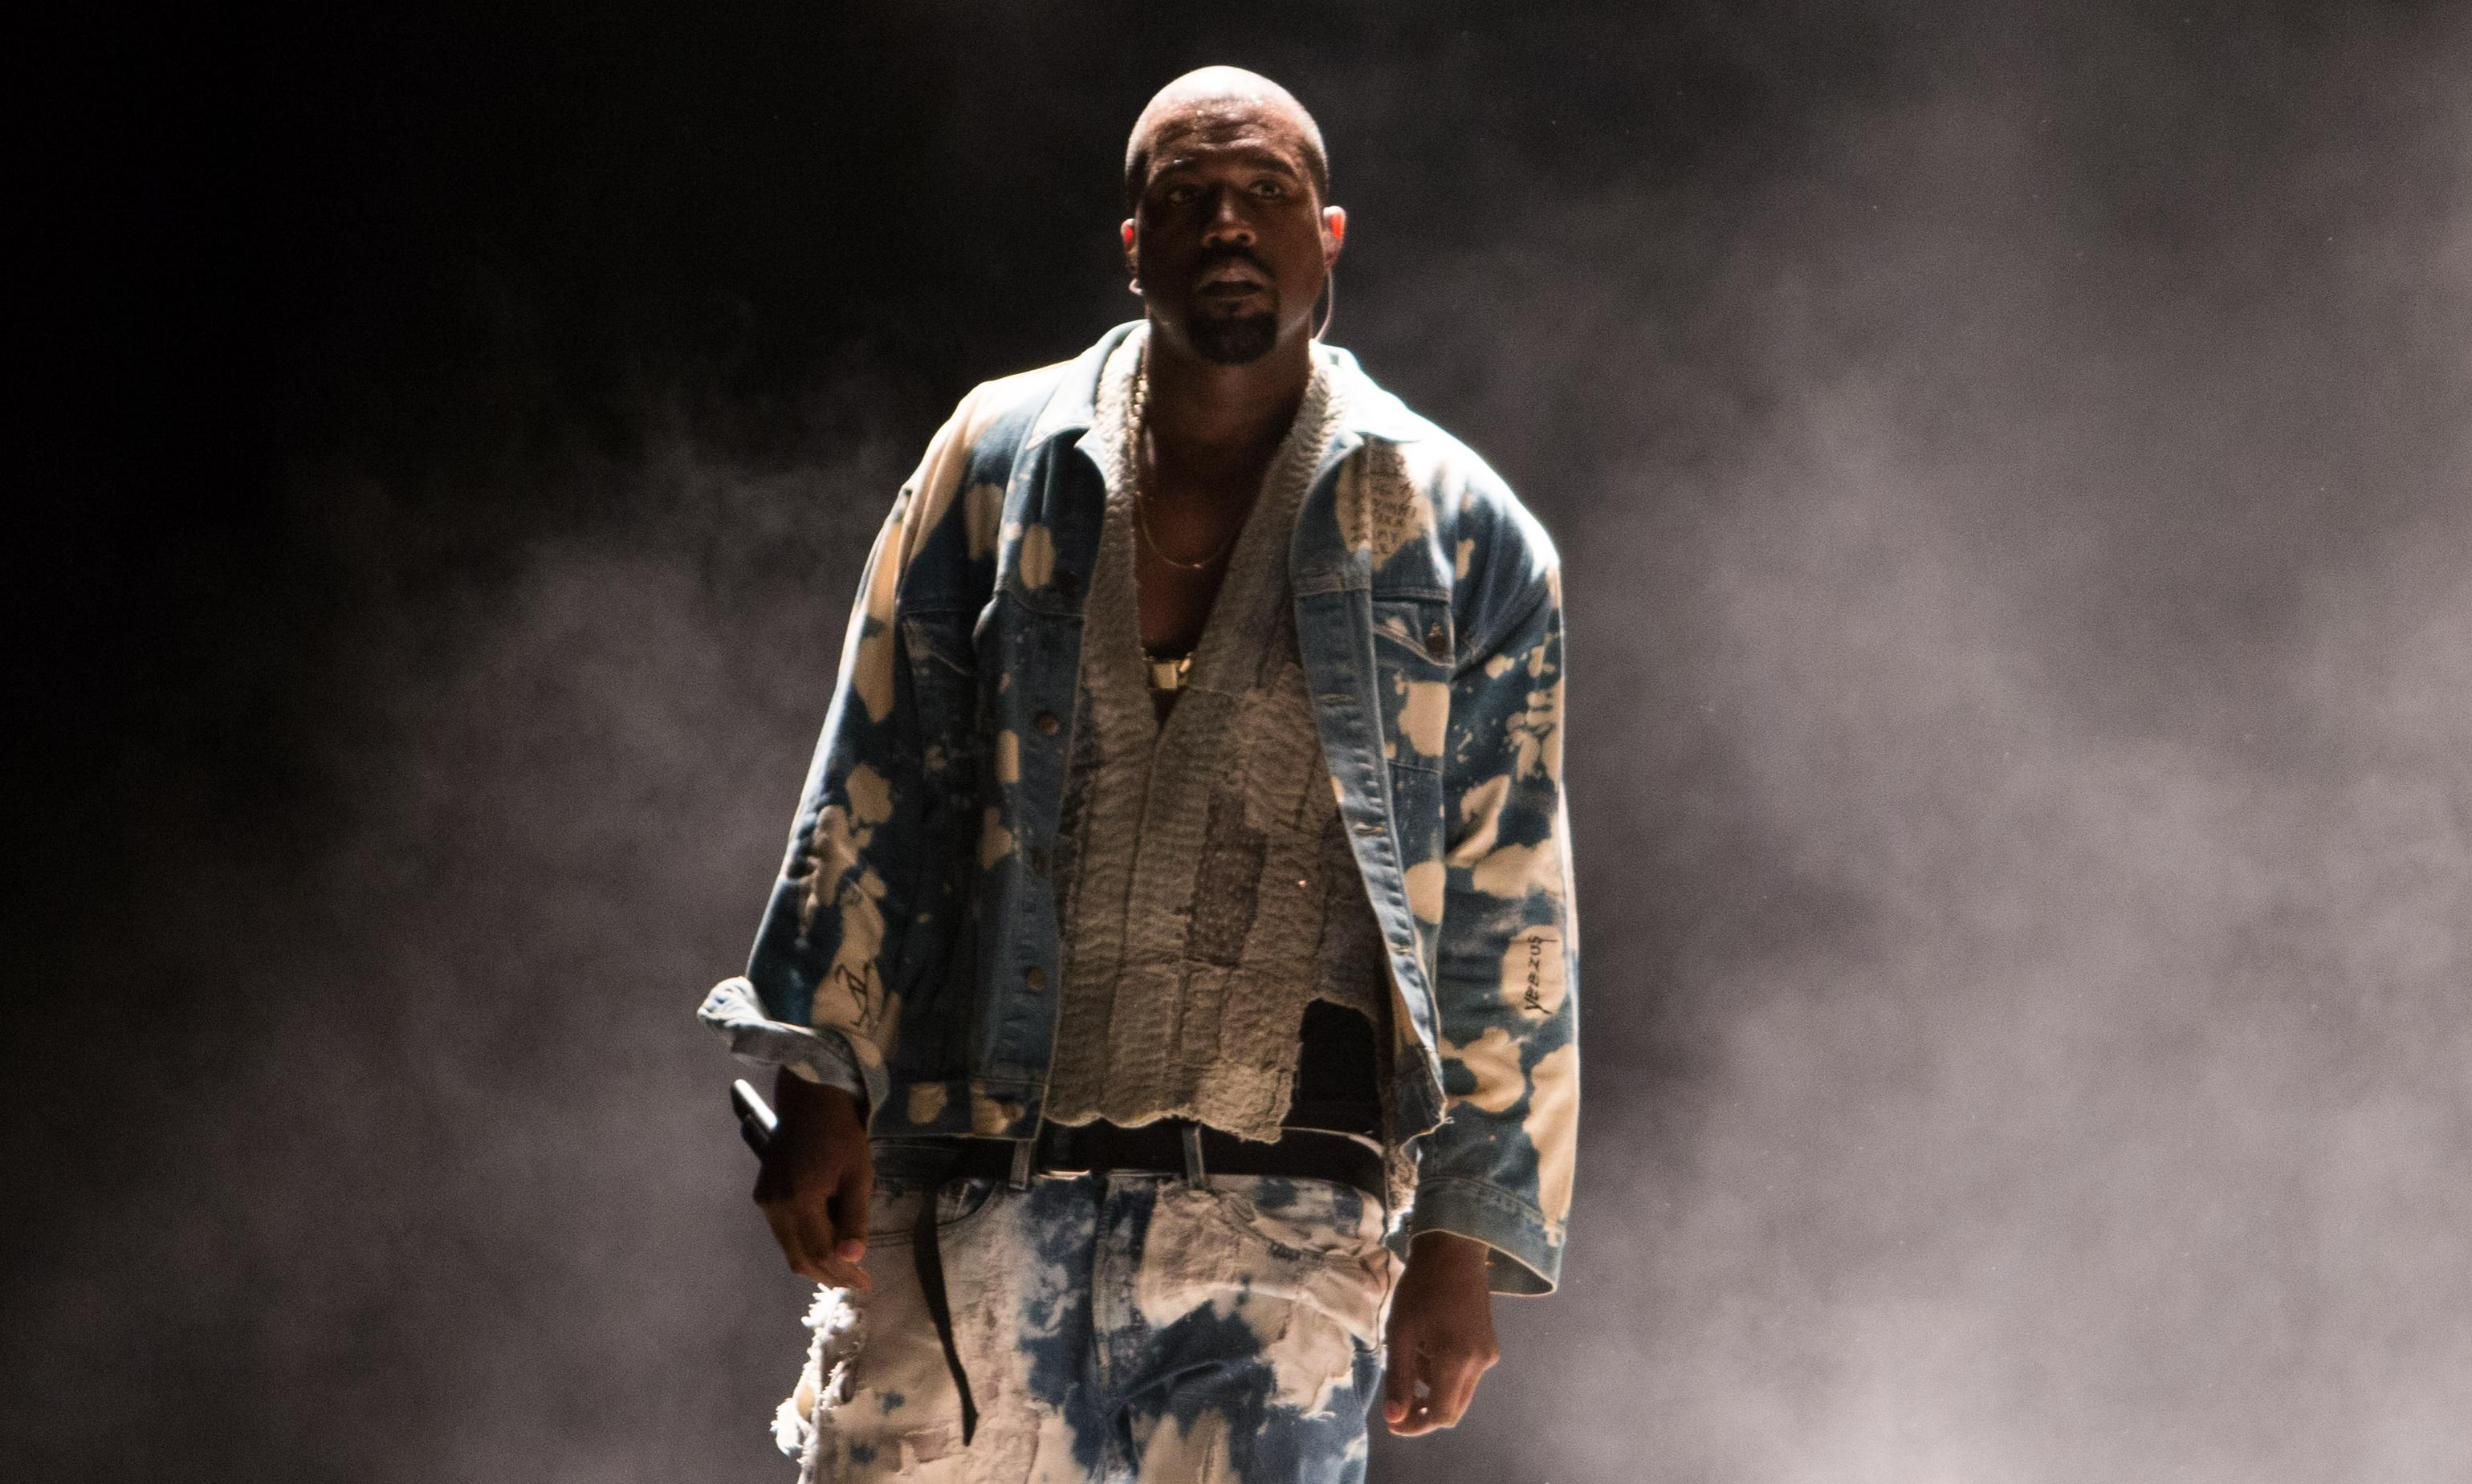 The greatest living rock star on the planet - Kanye West @ Glastonbury